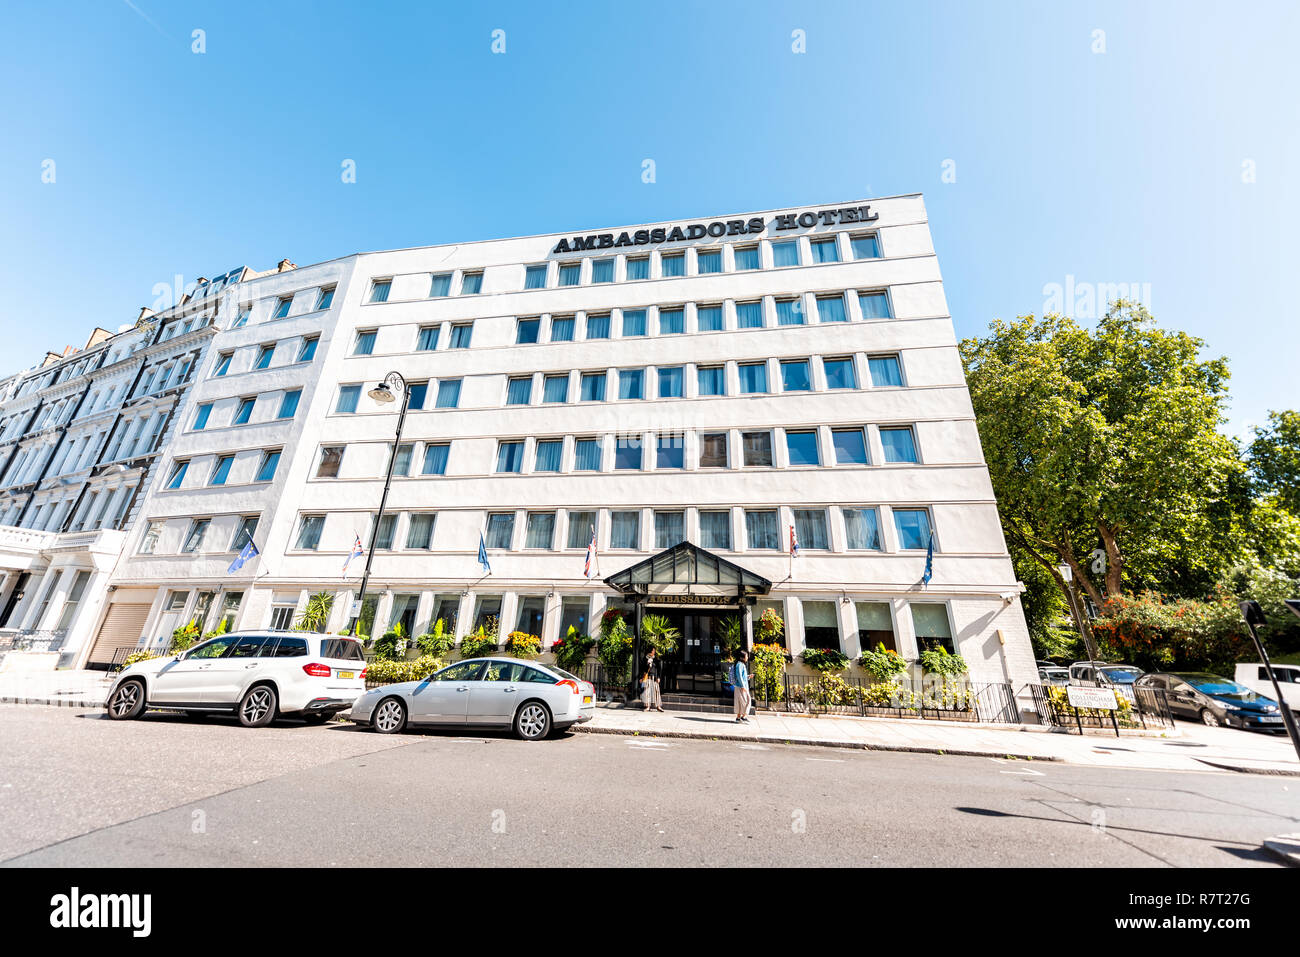 London, UK - September 13, 2018: Neighborhood district of Kensington, street, brick architecture, sign for Ambassadors hotel wide angle building Stock Photo